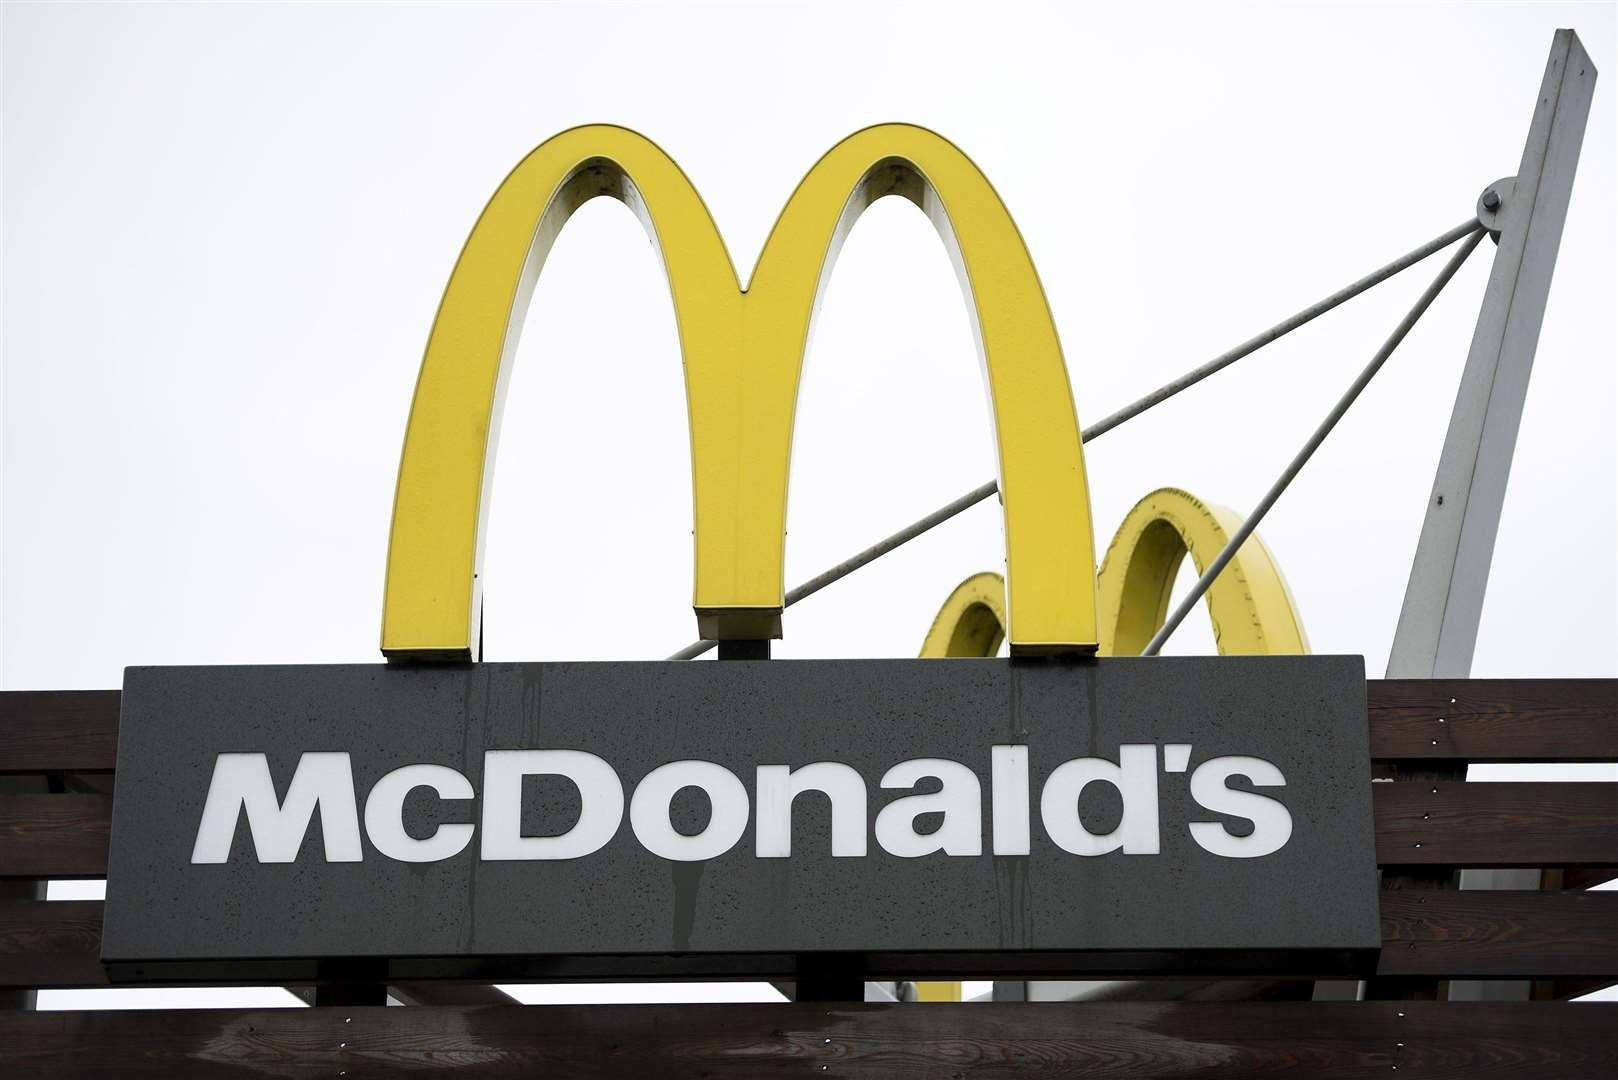 McDonald's is extending its breakfast hours at more than 100 franchises